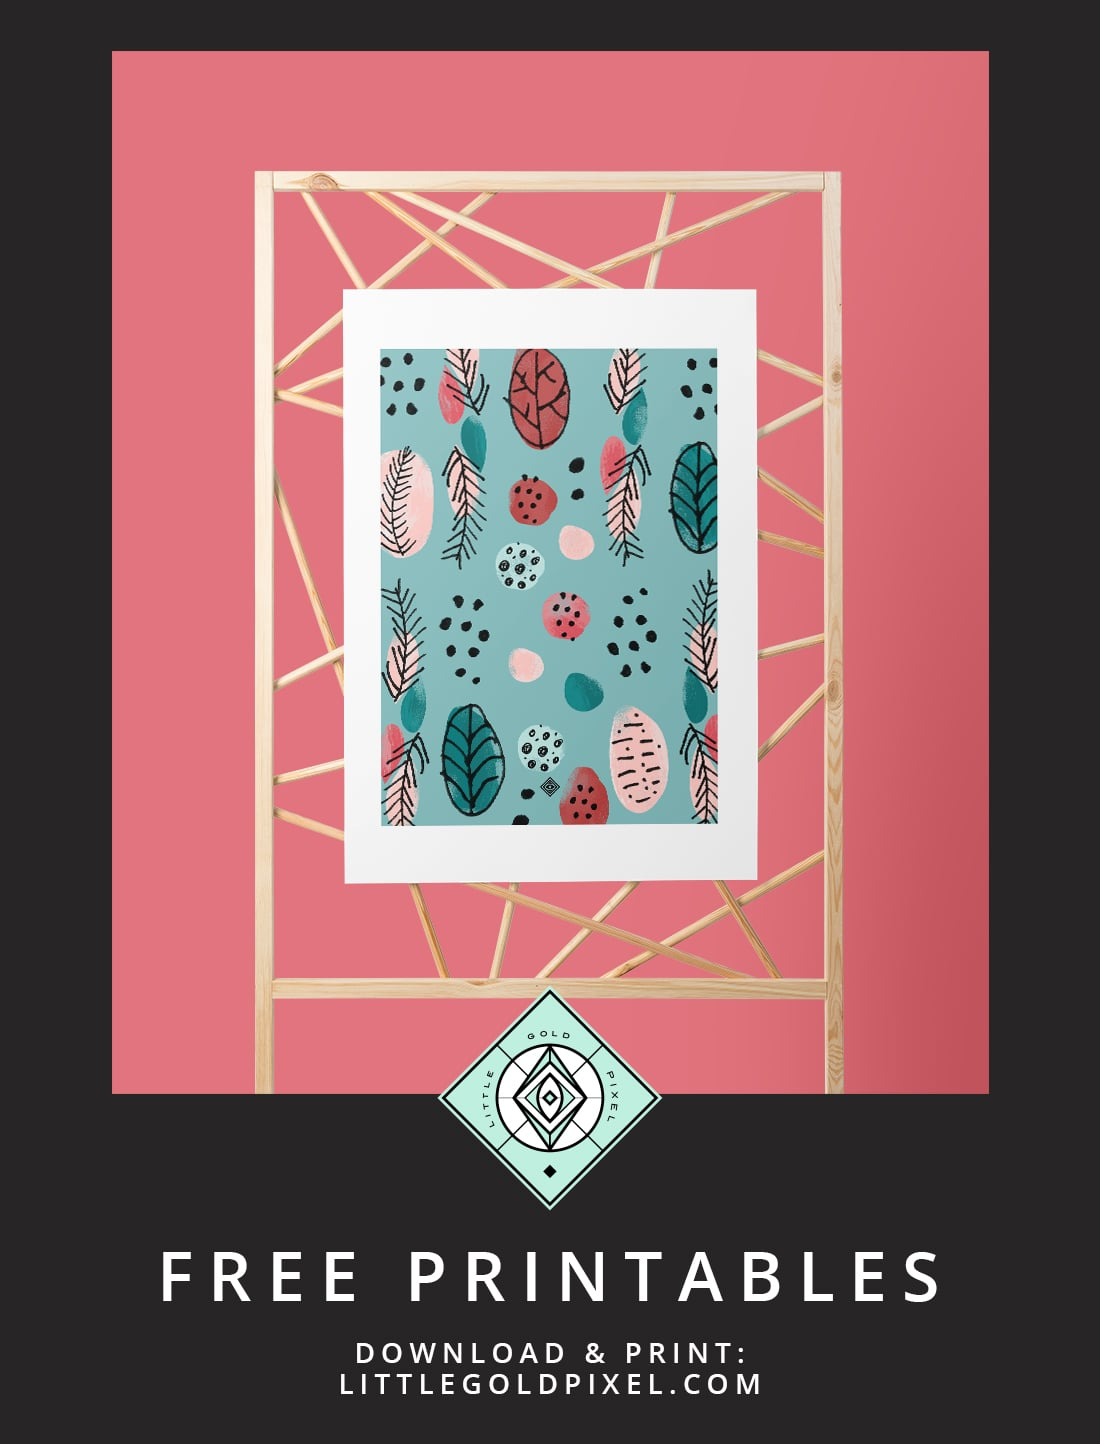 Download this free Mid-Century Illustration Art Printable as part of my Freebie Friday series. Perfect for mid-century modern decor. Print & hang today!